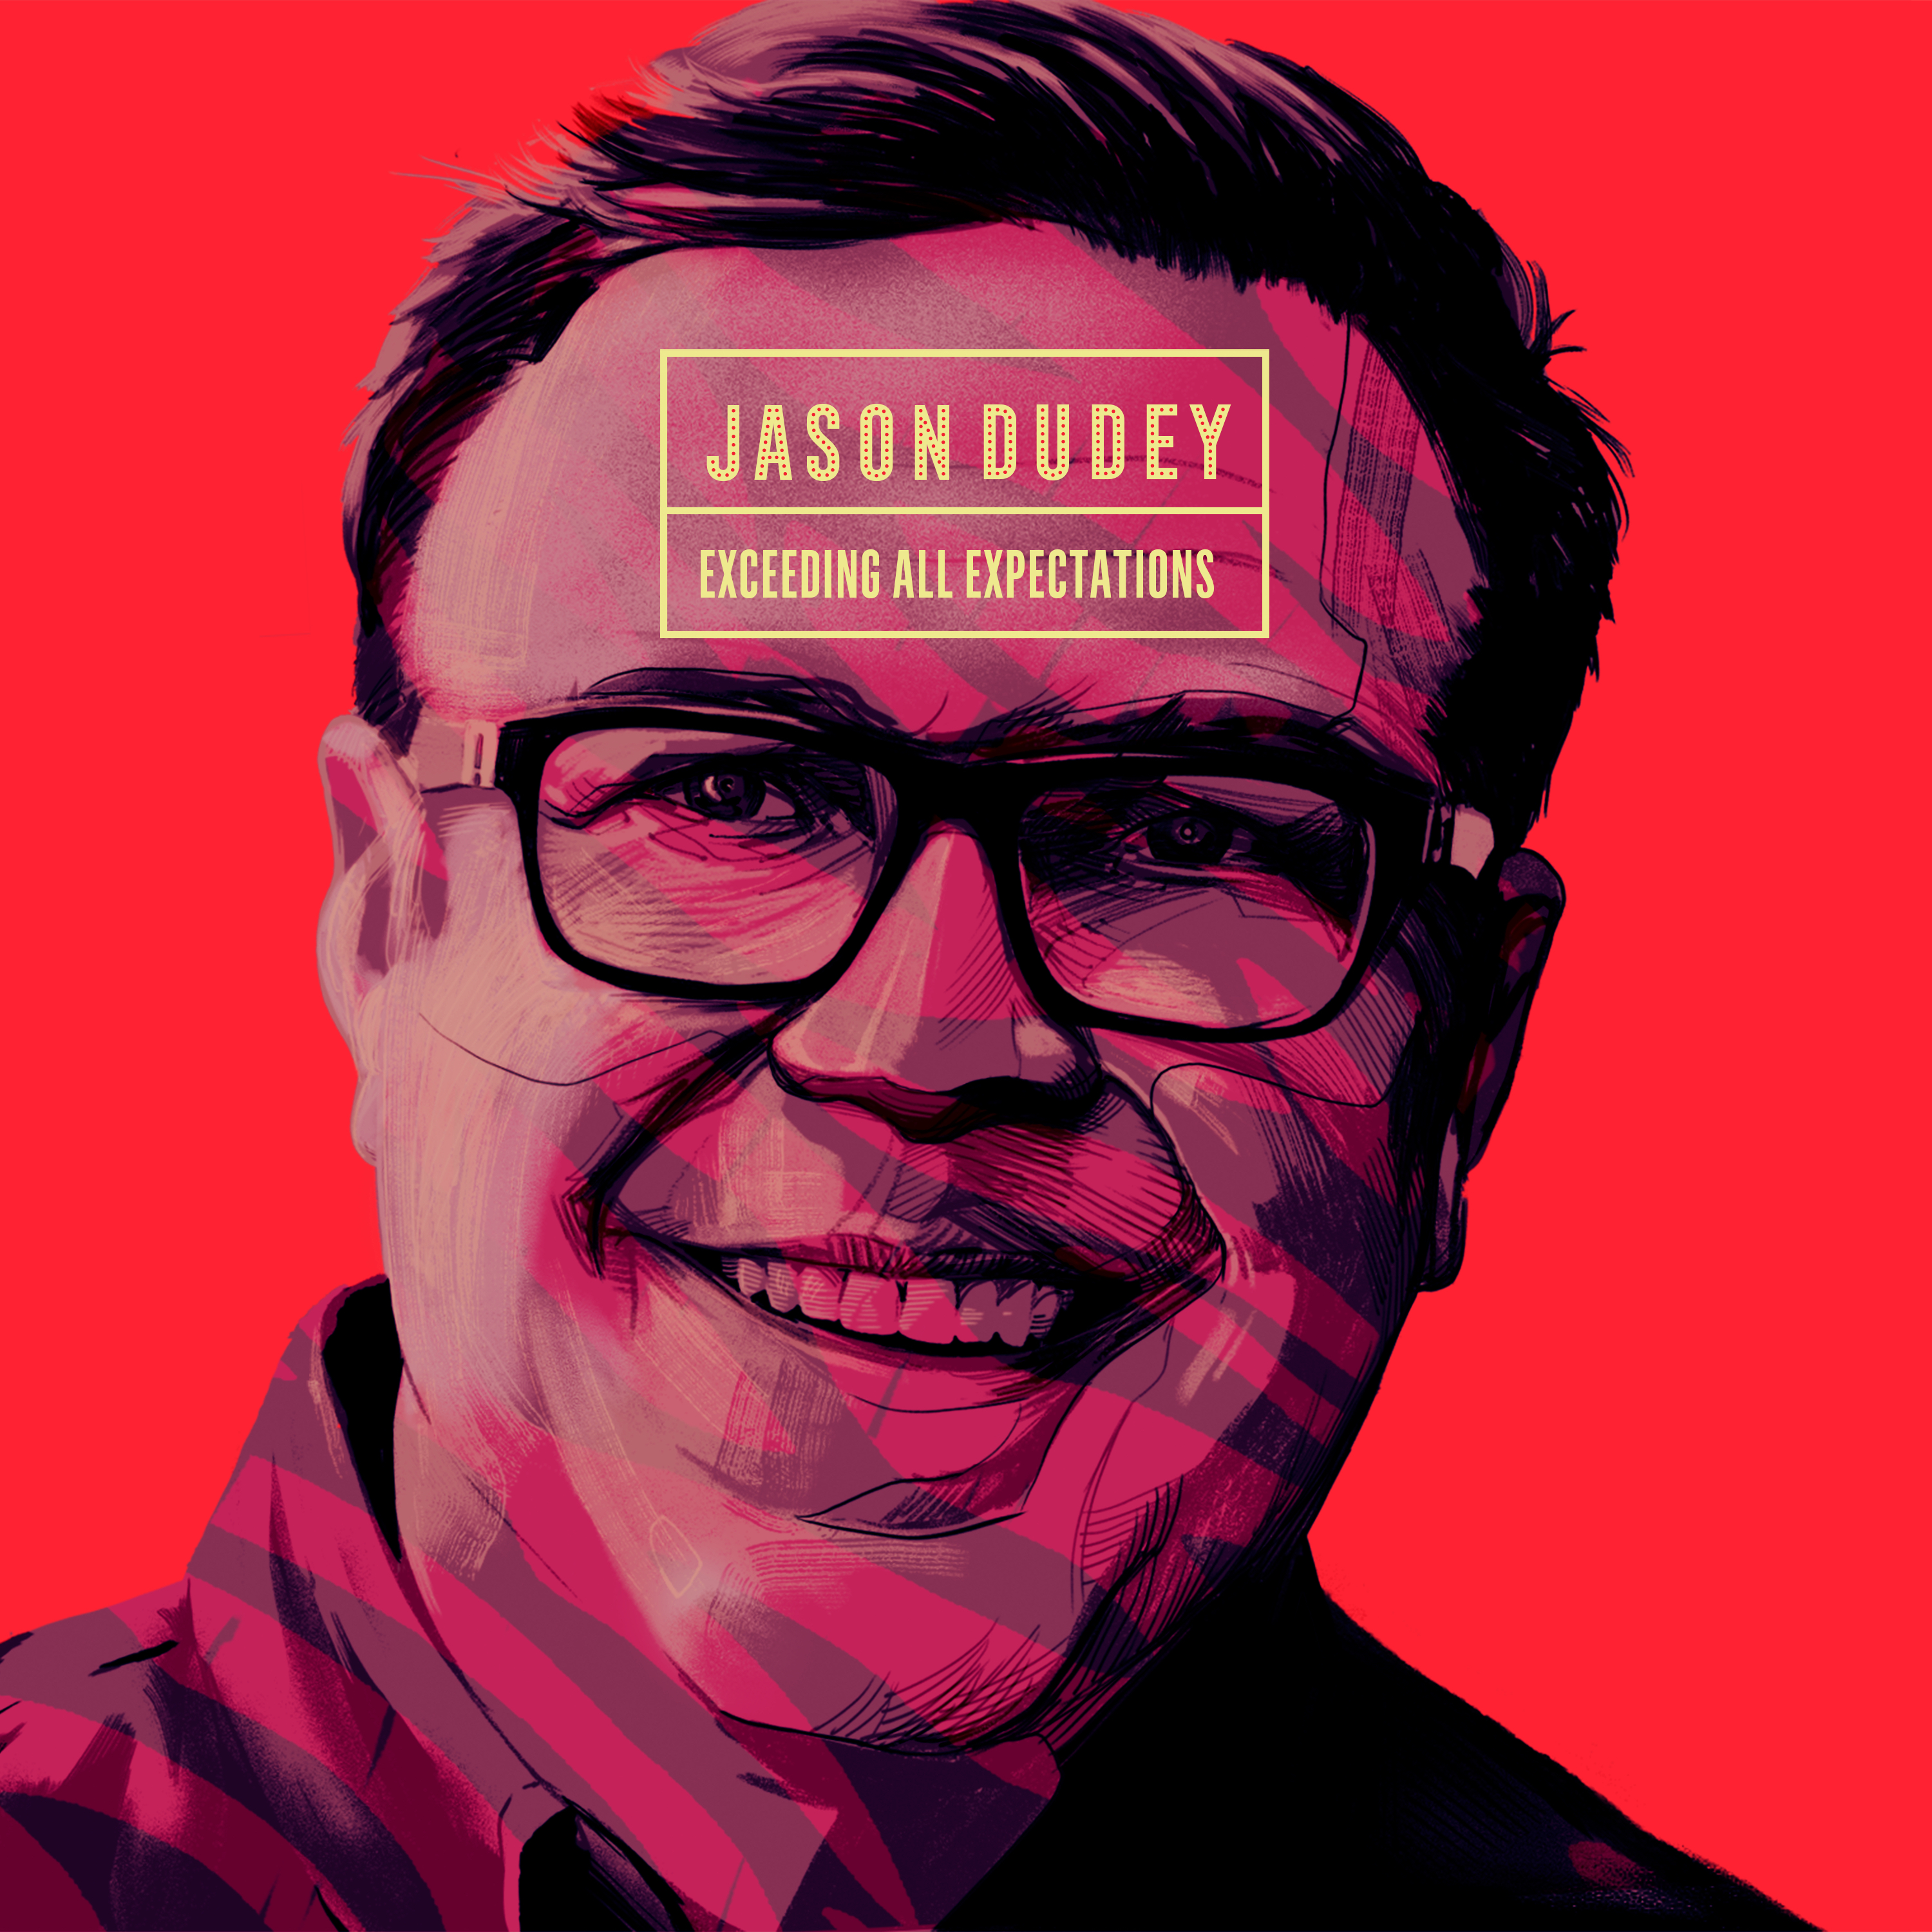 COMEDY NEWS: Jason Dudey's Latest Exceeding All Expectations Out Friday!